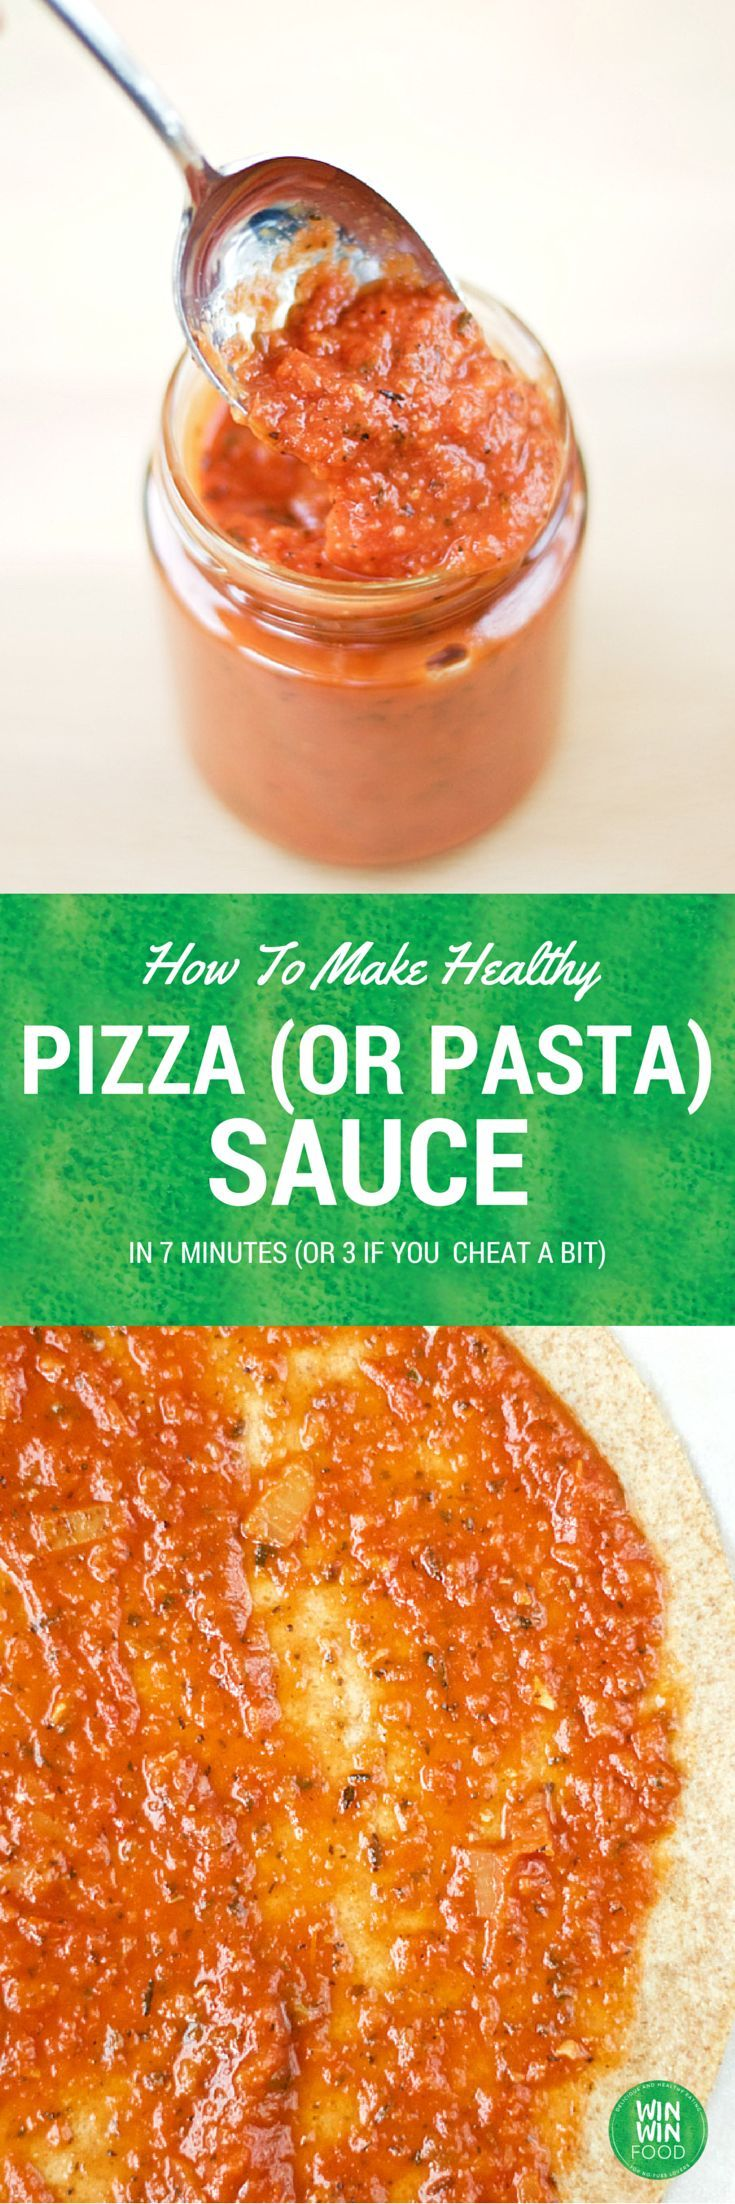 How To Make Pizza Sauce (Or Pasta Sauce) in 7 Minutes